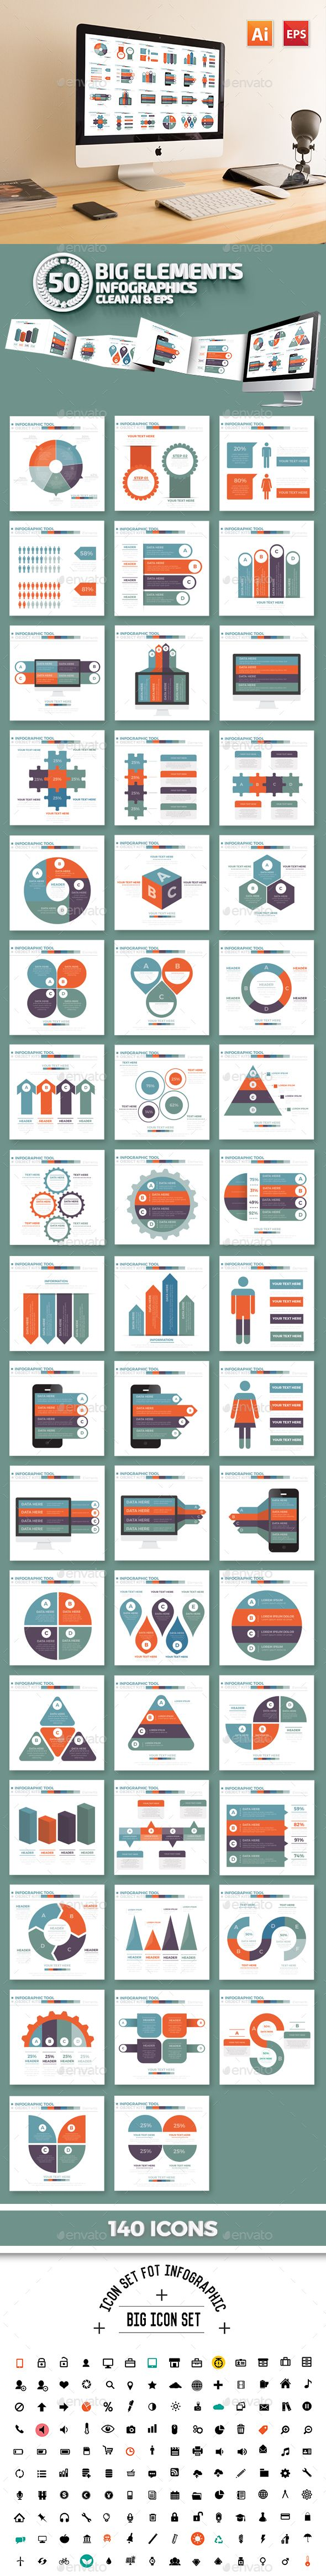 50 Infographics Design Templates Vector EPS, AI Illustrator